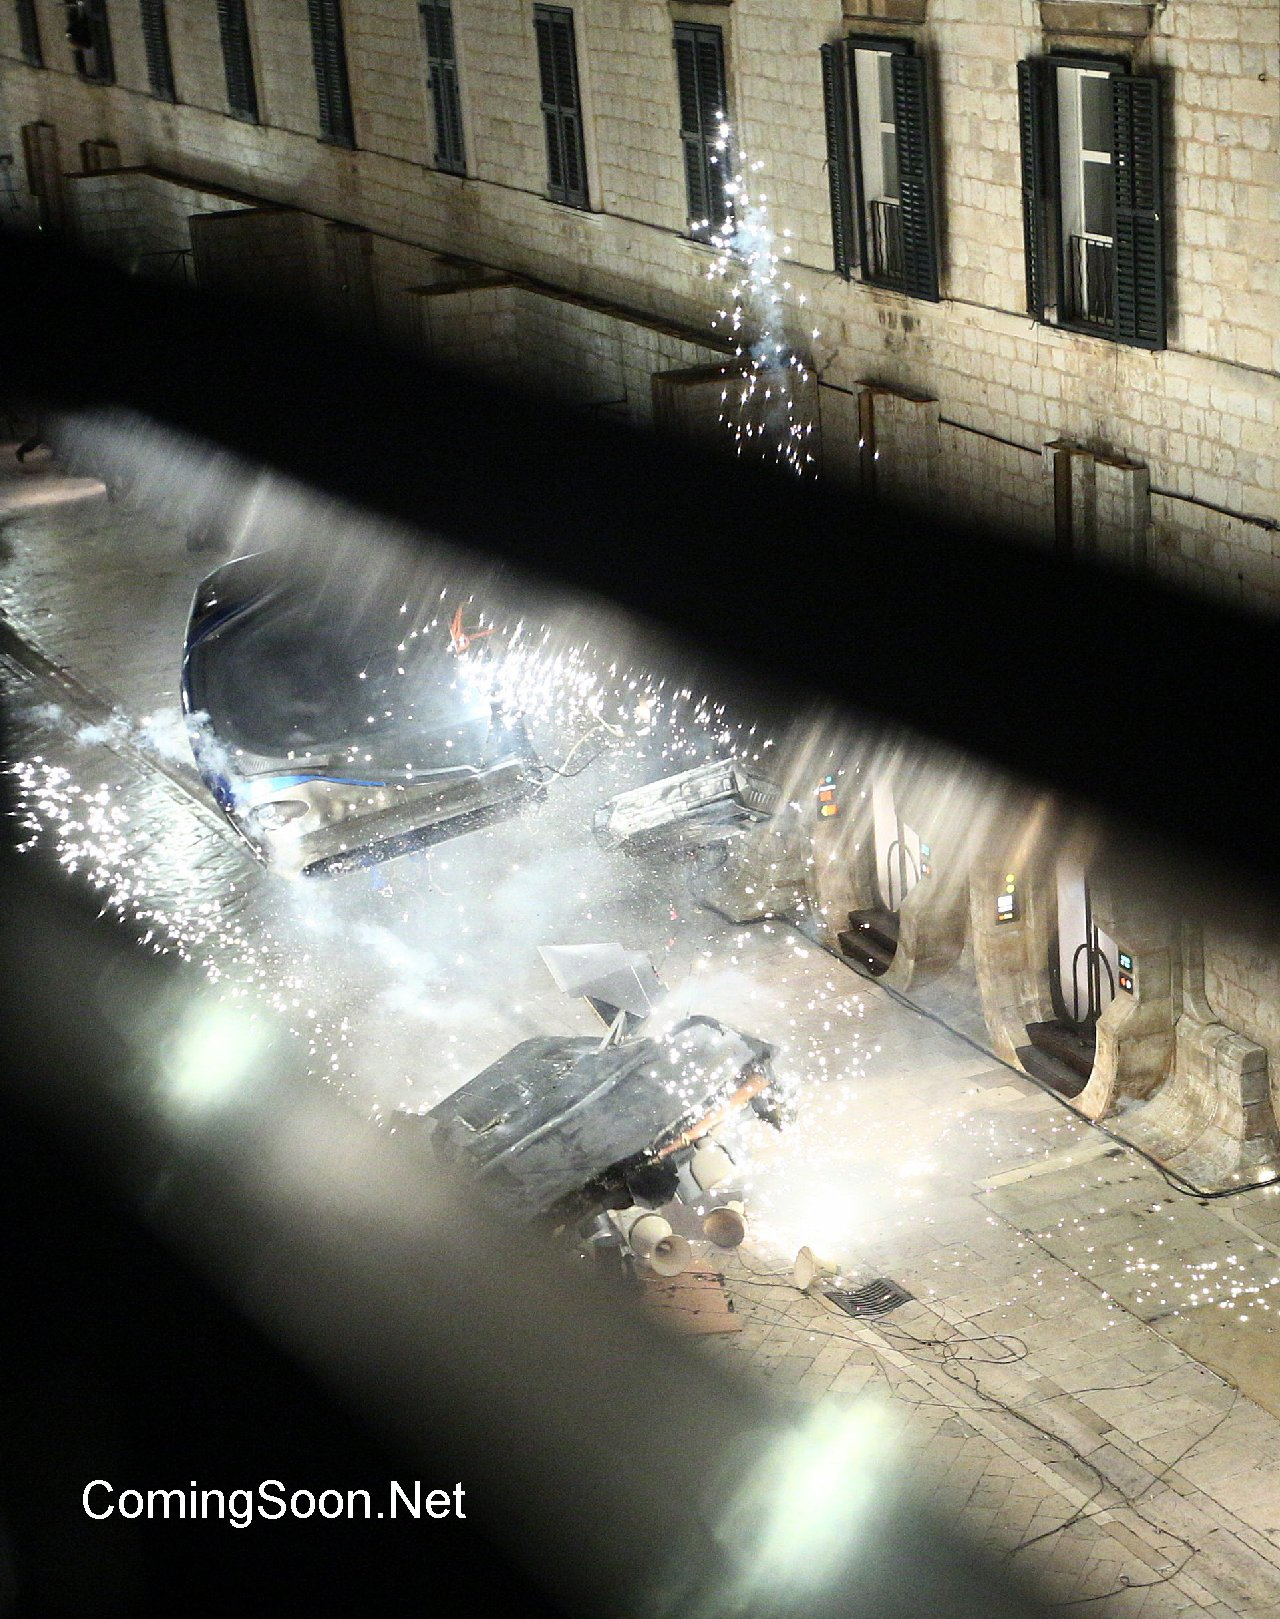 Star Wars: Episode VIII Sete set of 'Star Wars: Episode VIII on Stradun, the main street of Dubrovnik. During one scene, costumed cast members gather on the street while a landspeeder is made to explode causing them to flee.Featuring: AtmosphereWhere: Dubrovnik, CroatiaWhen: 13 Mar 2016Credit: WENN.com**Only available for publication in UK, USA, Germany, Austria, Switzerland. Not available for subscribers.**